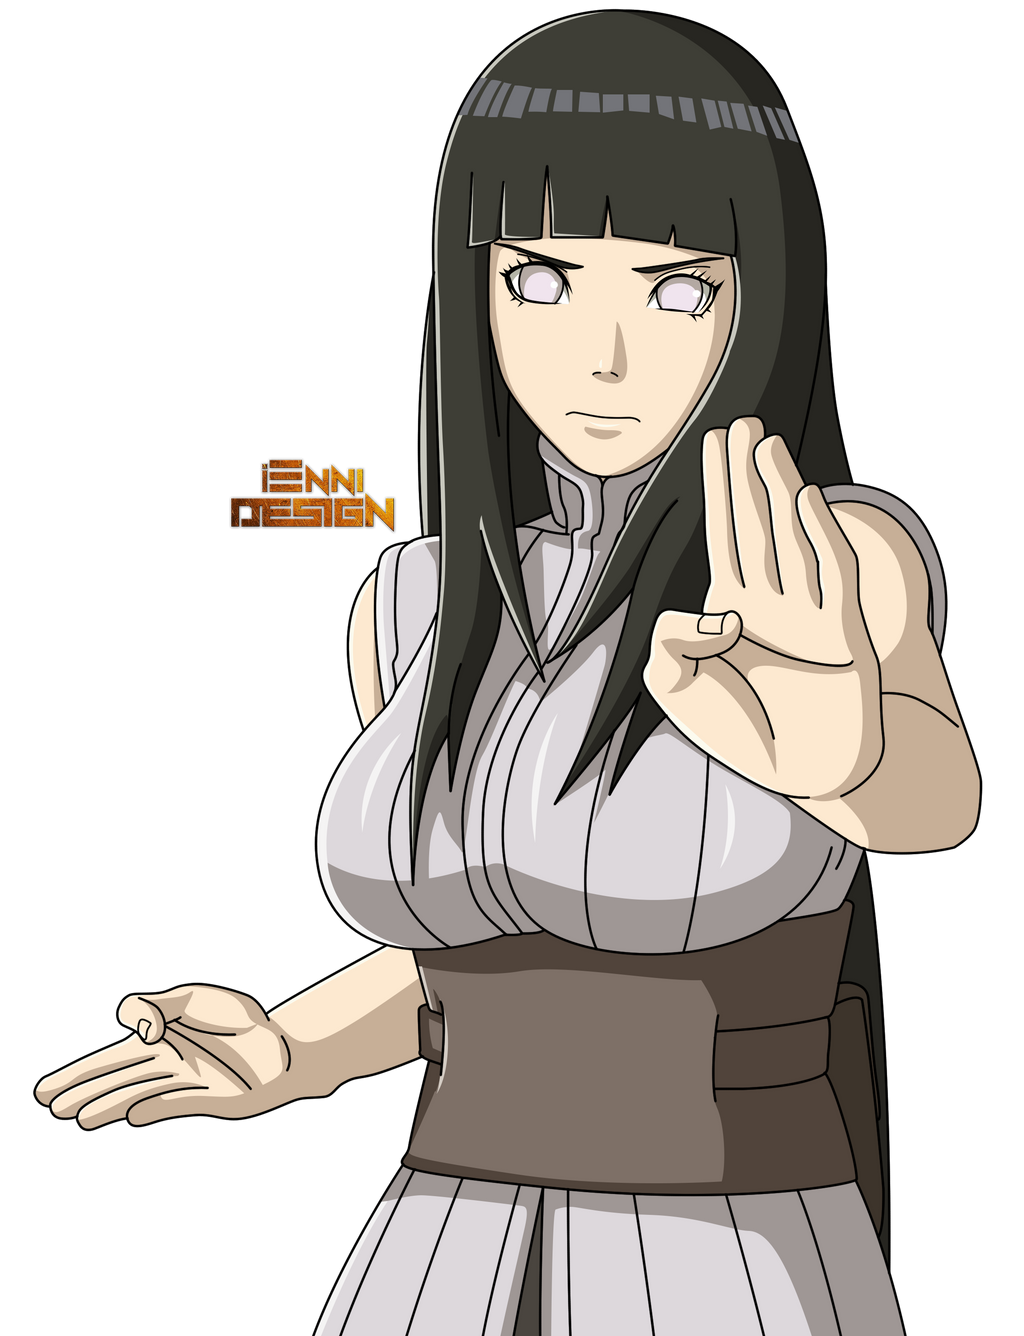 The Last Naruto the Movie Hinata Hyuuga by iEnniDESIGN on DeviantArt